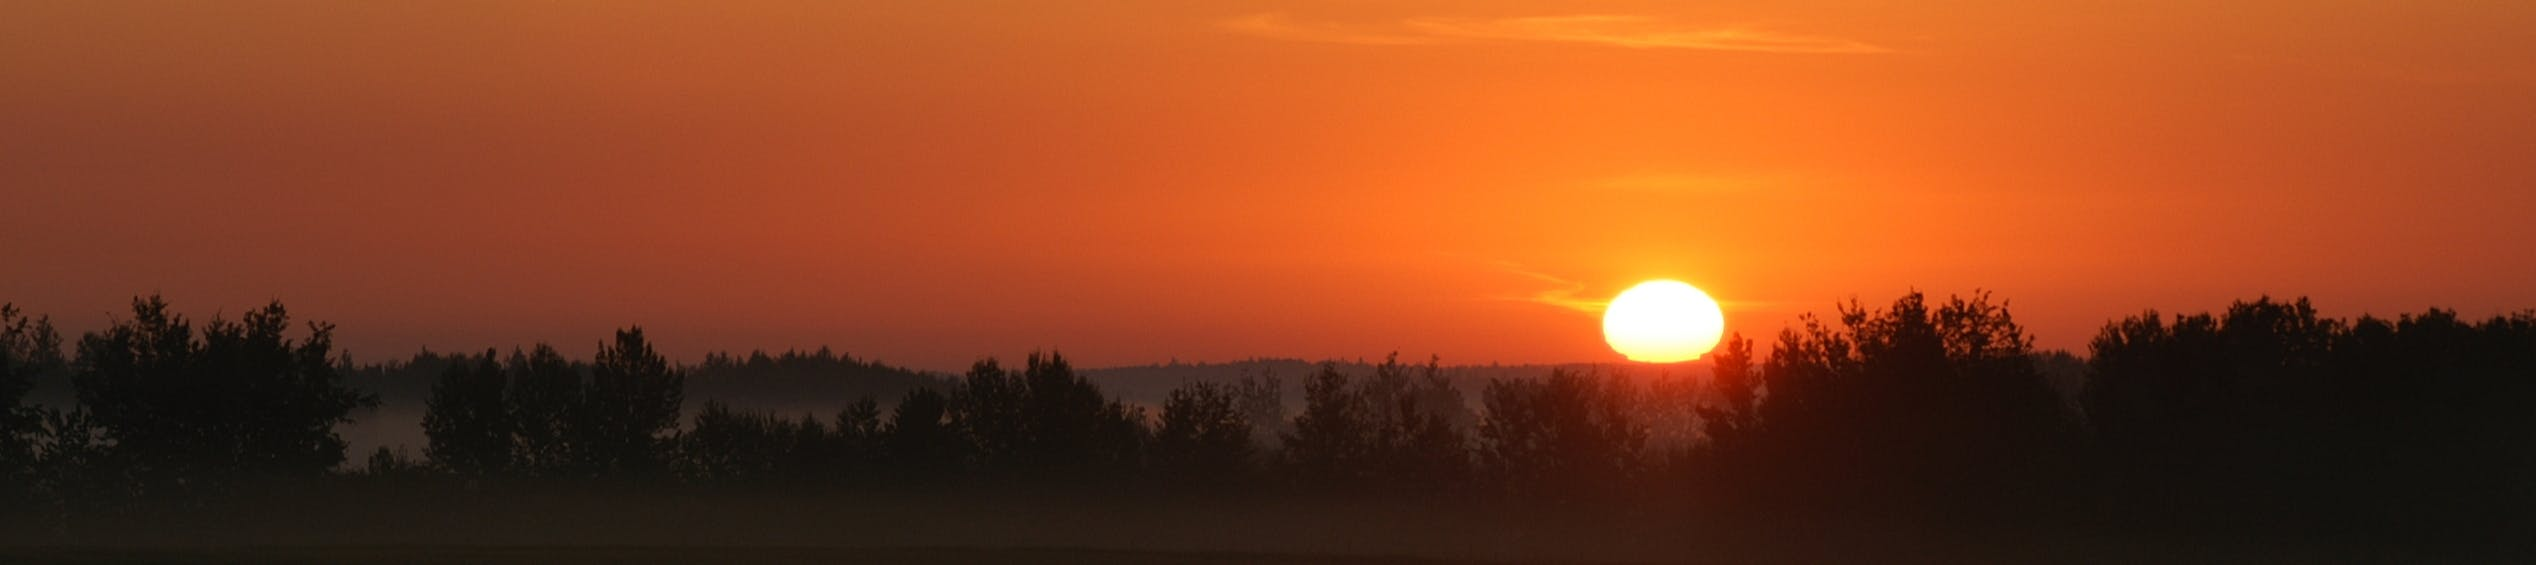 Sunset over Alberta's West Country